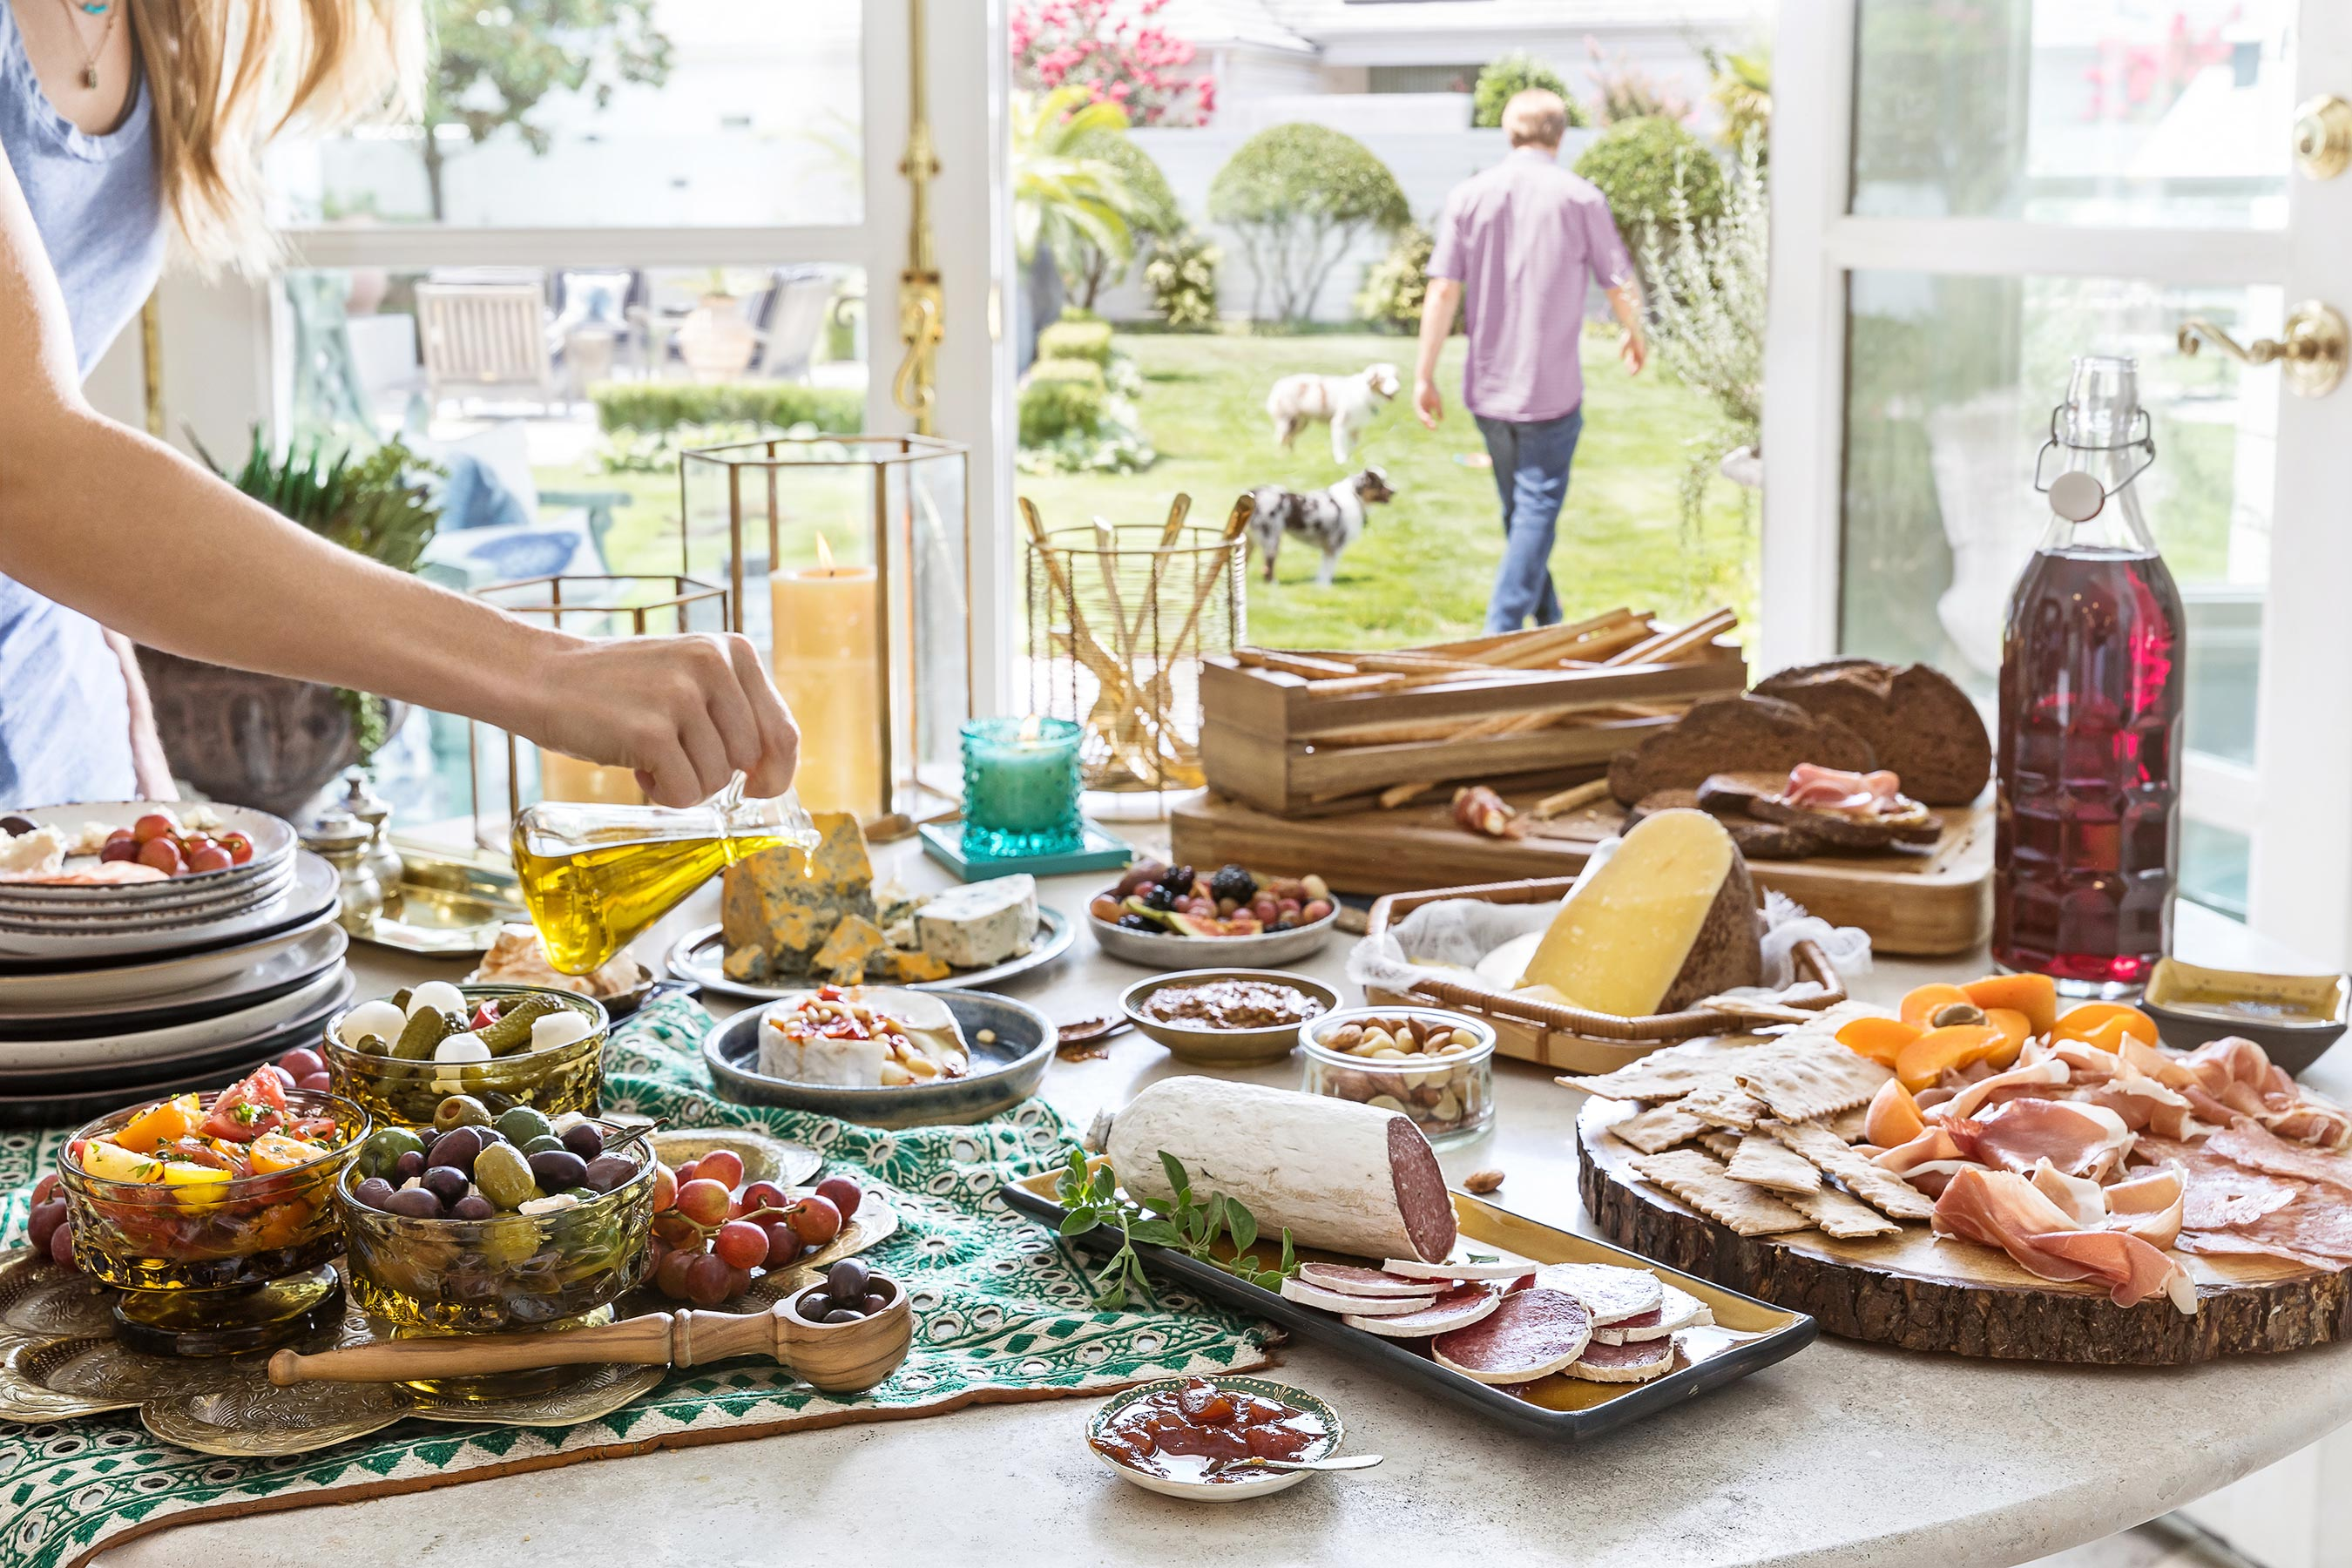 Huge spread of Mediterranean food, cheeses and charcuterie on a table